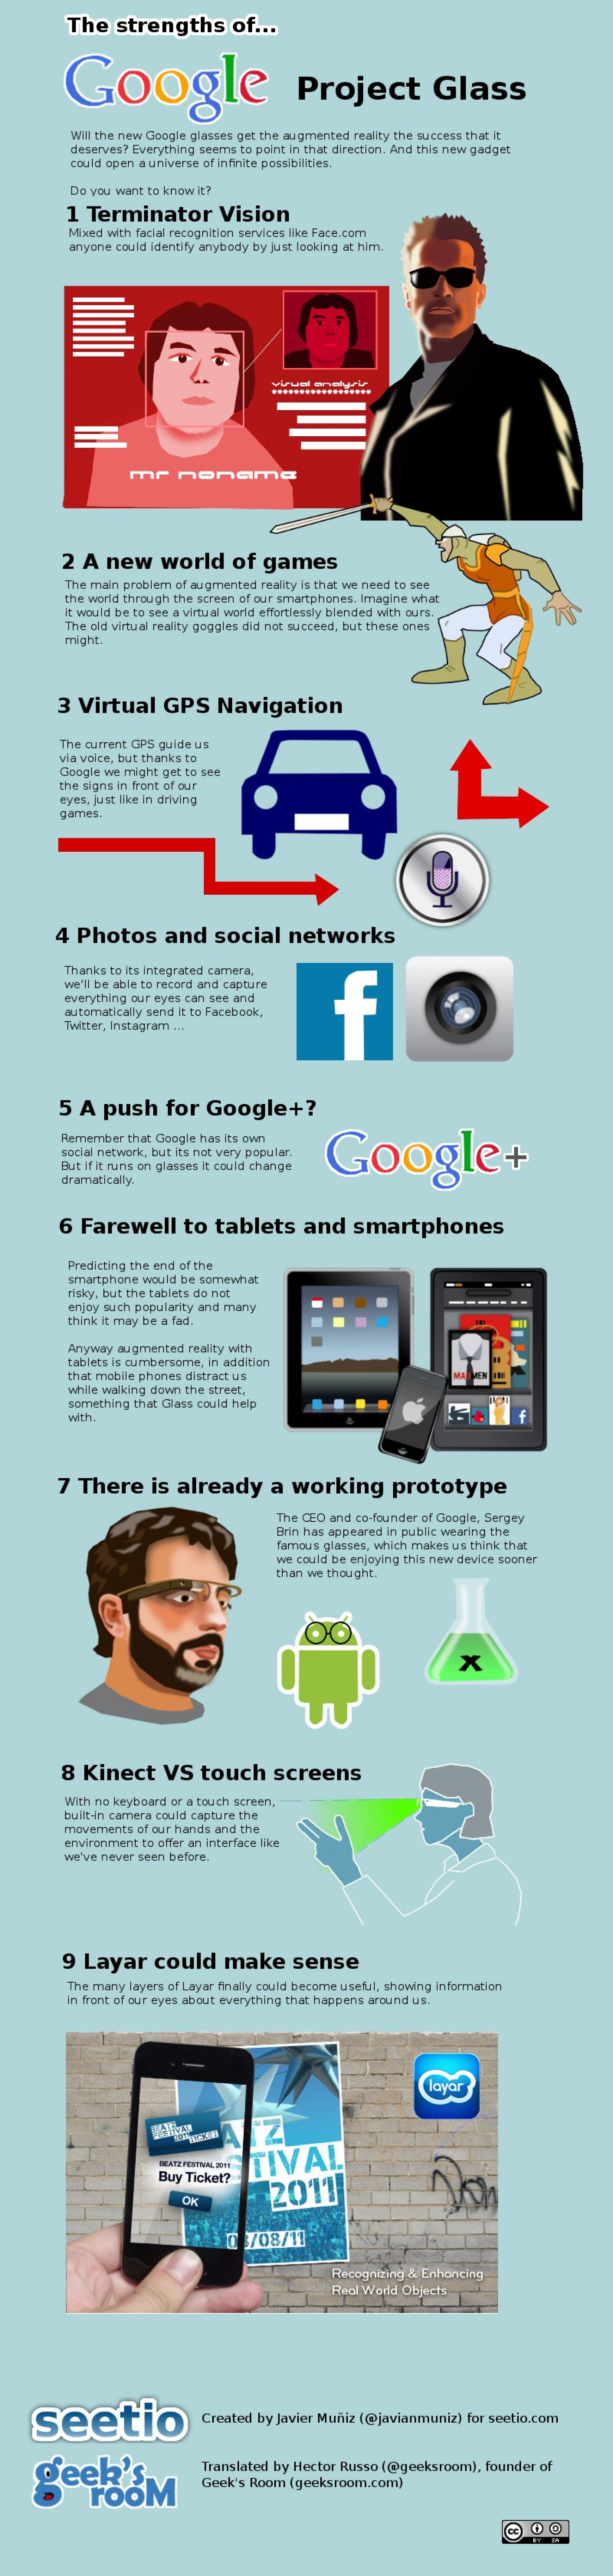 The strengths of Google Project Glass Infographic